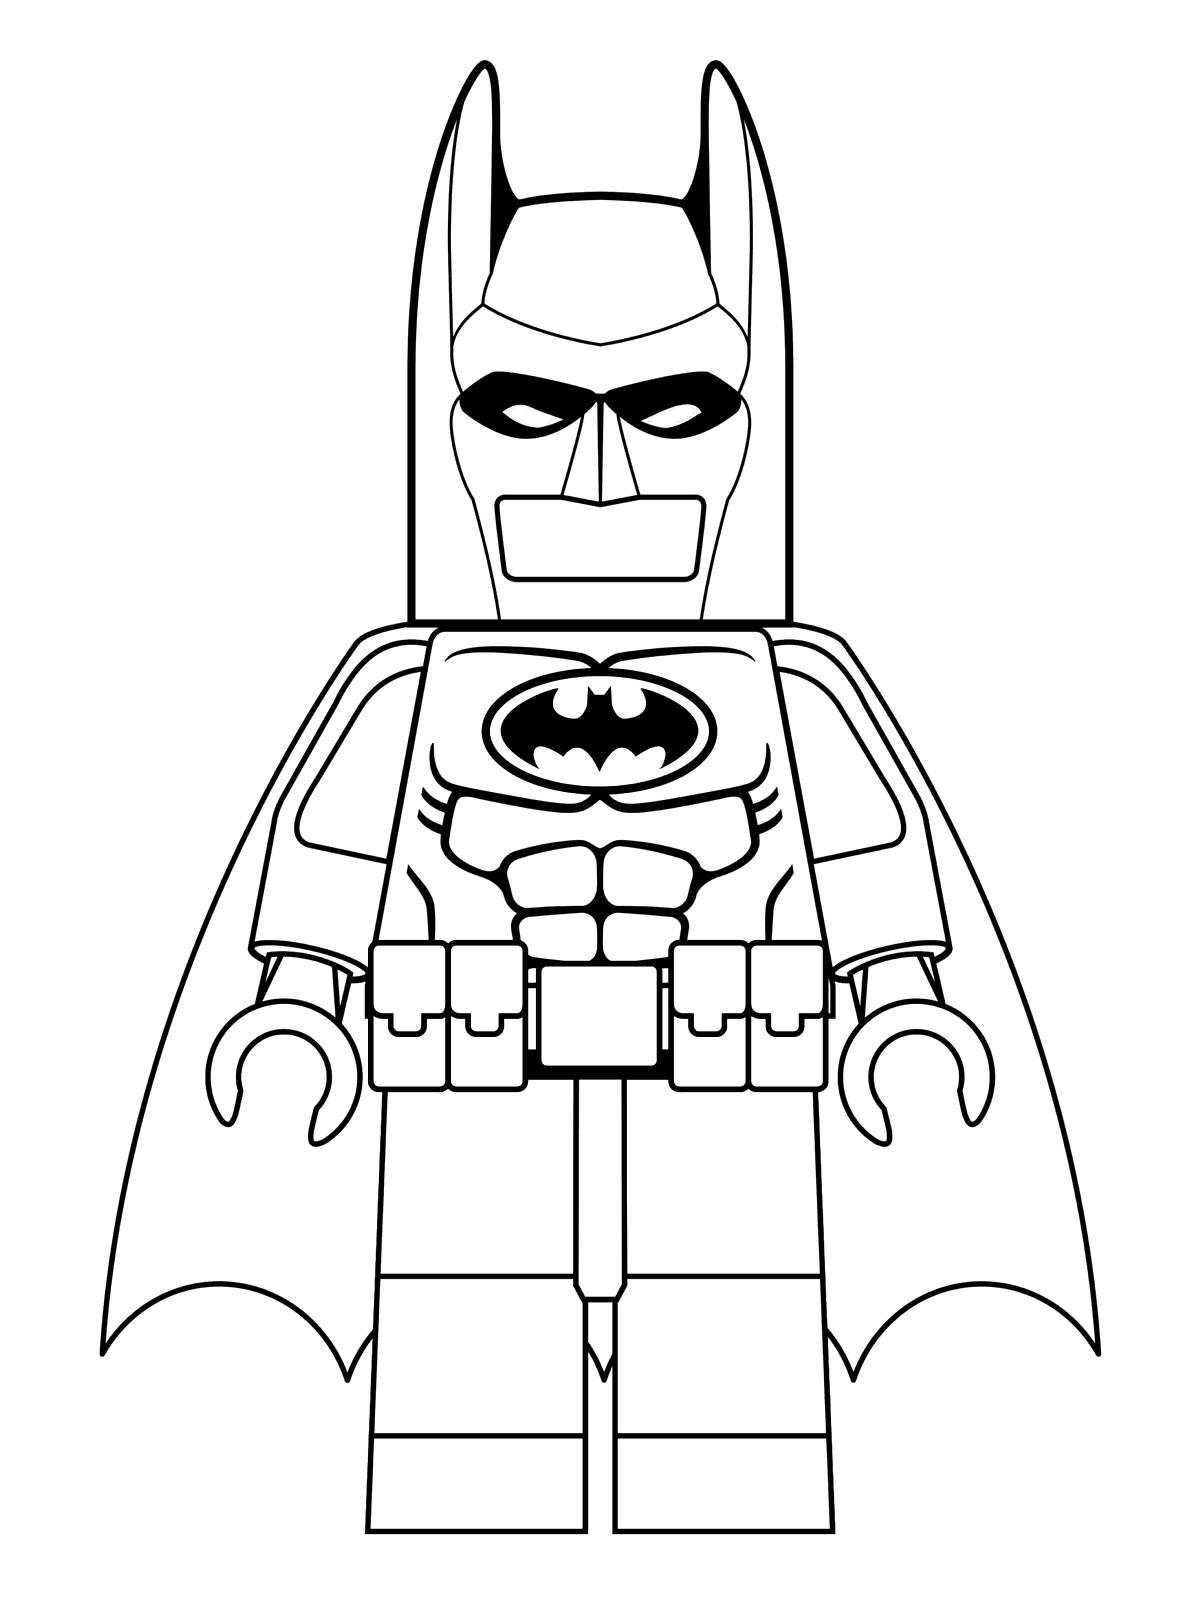 lego batman coloring pages Lego Batman Coloring Pages | Coloring | Pinterest | Lego coloring  lego batman coloring pages